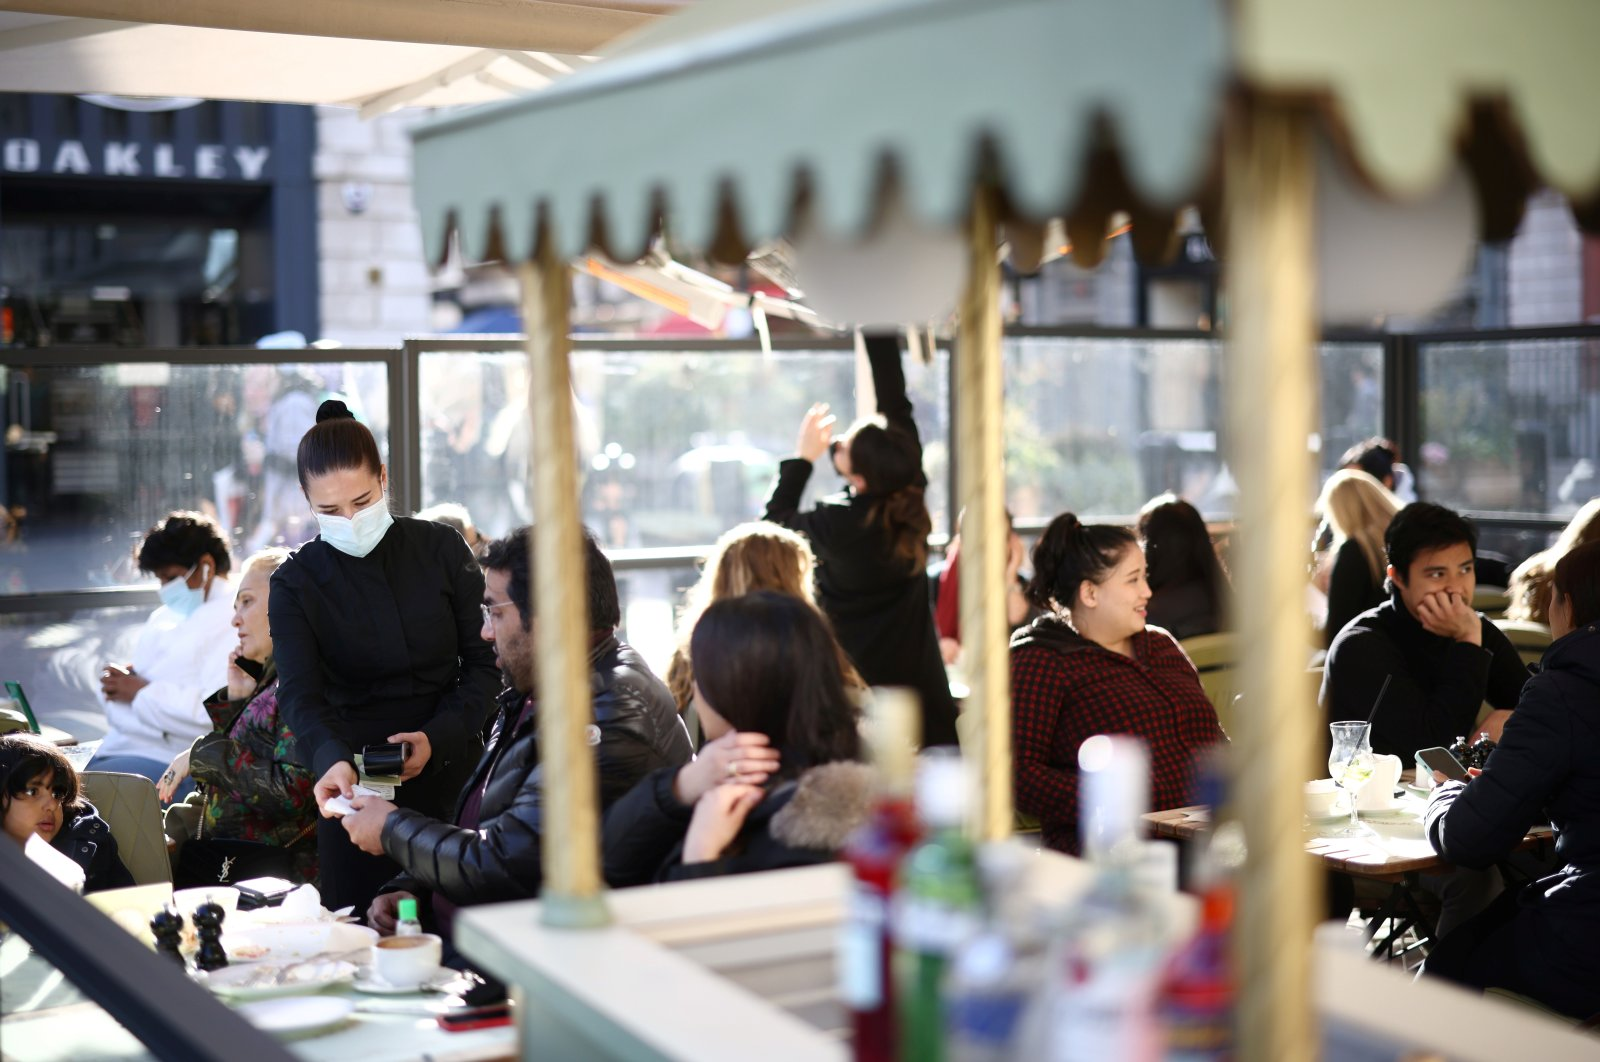 People sit at an outside restaurant area, as the coronavirus restrictions ease, at Covent Garden in London, U.K., April 12, 2021. (Reuters Photo)